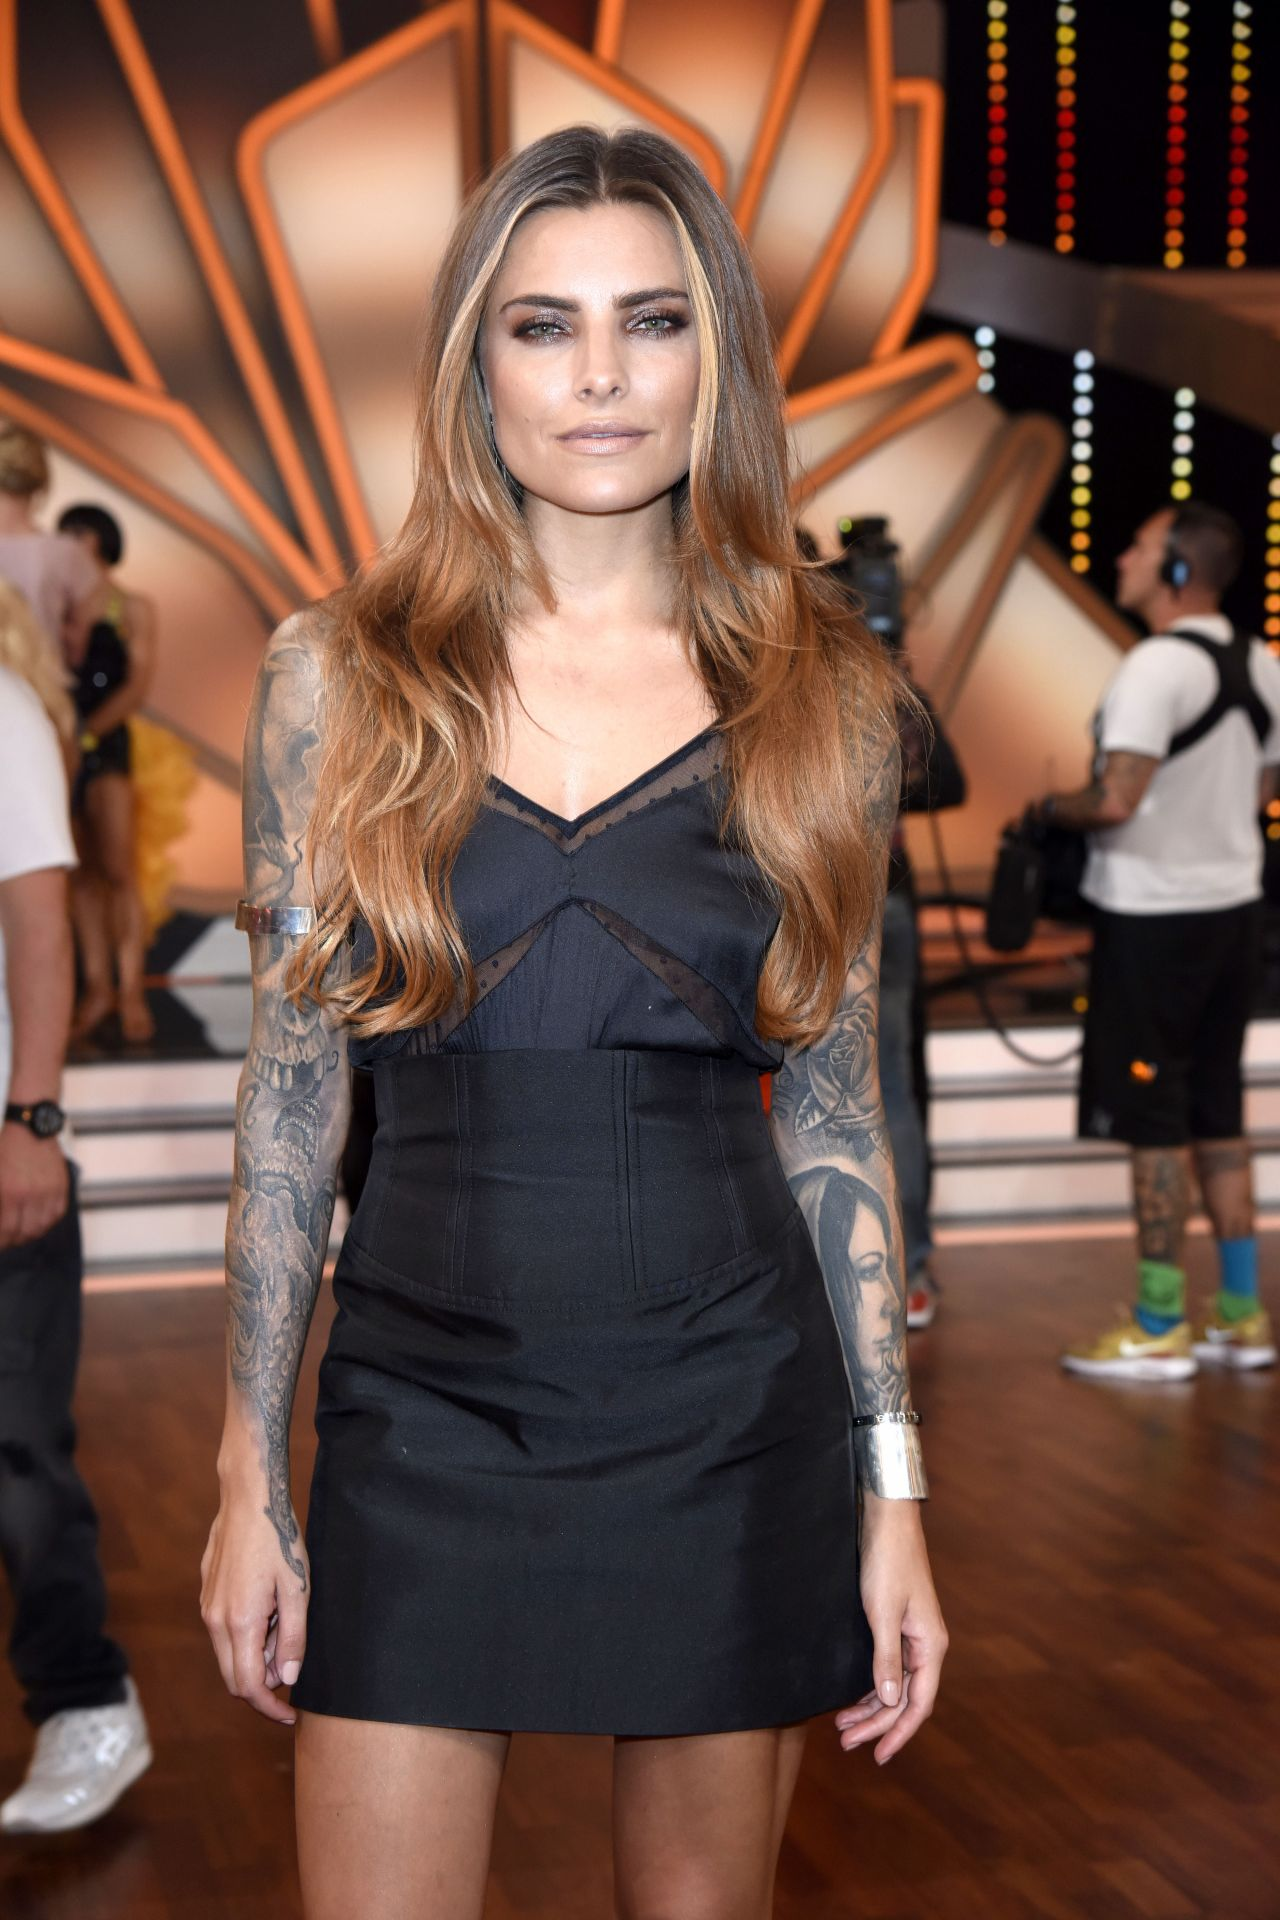 Sophia thomalla rtl live tv show lets dance in cologne nude (72 photos), Hot Celebrity image